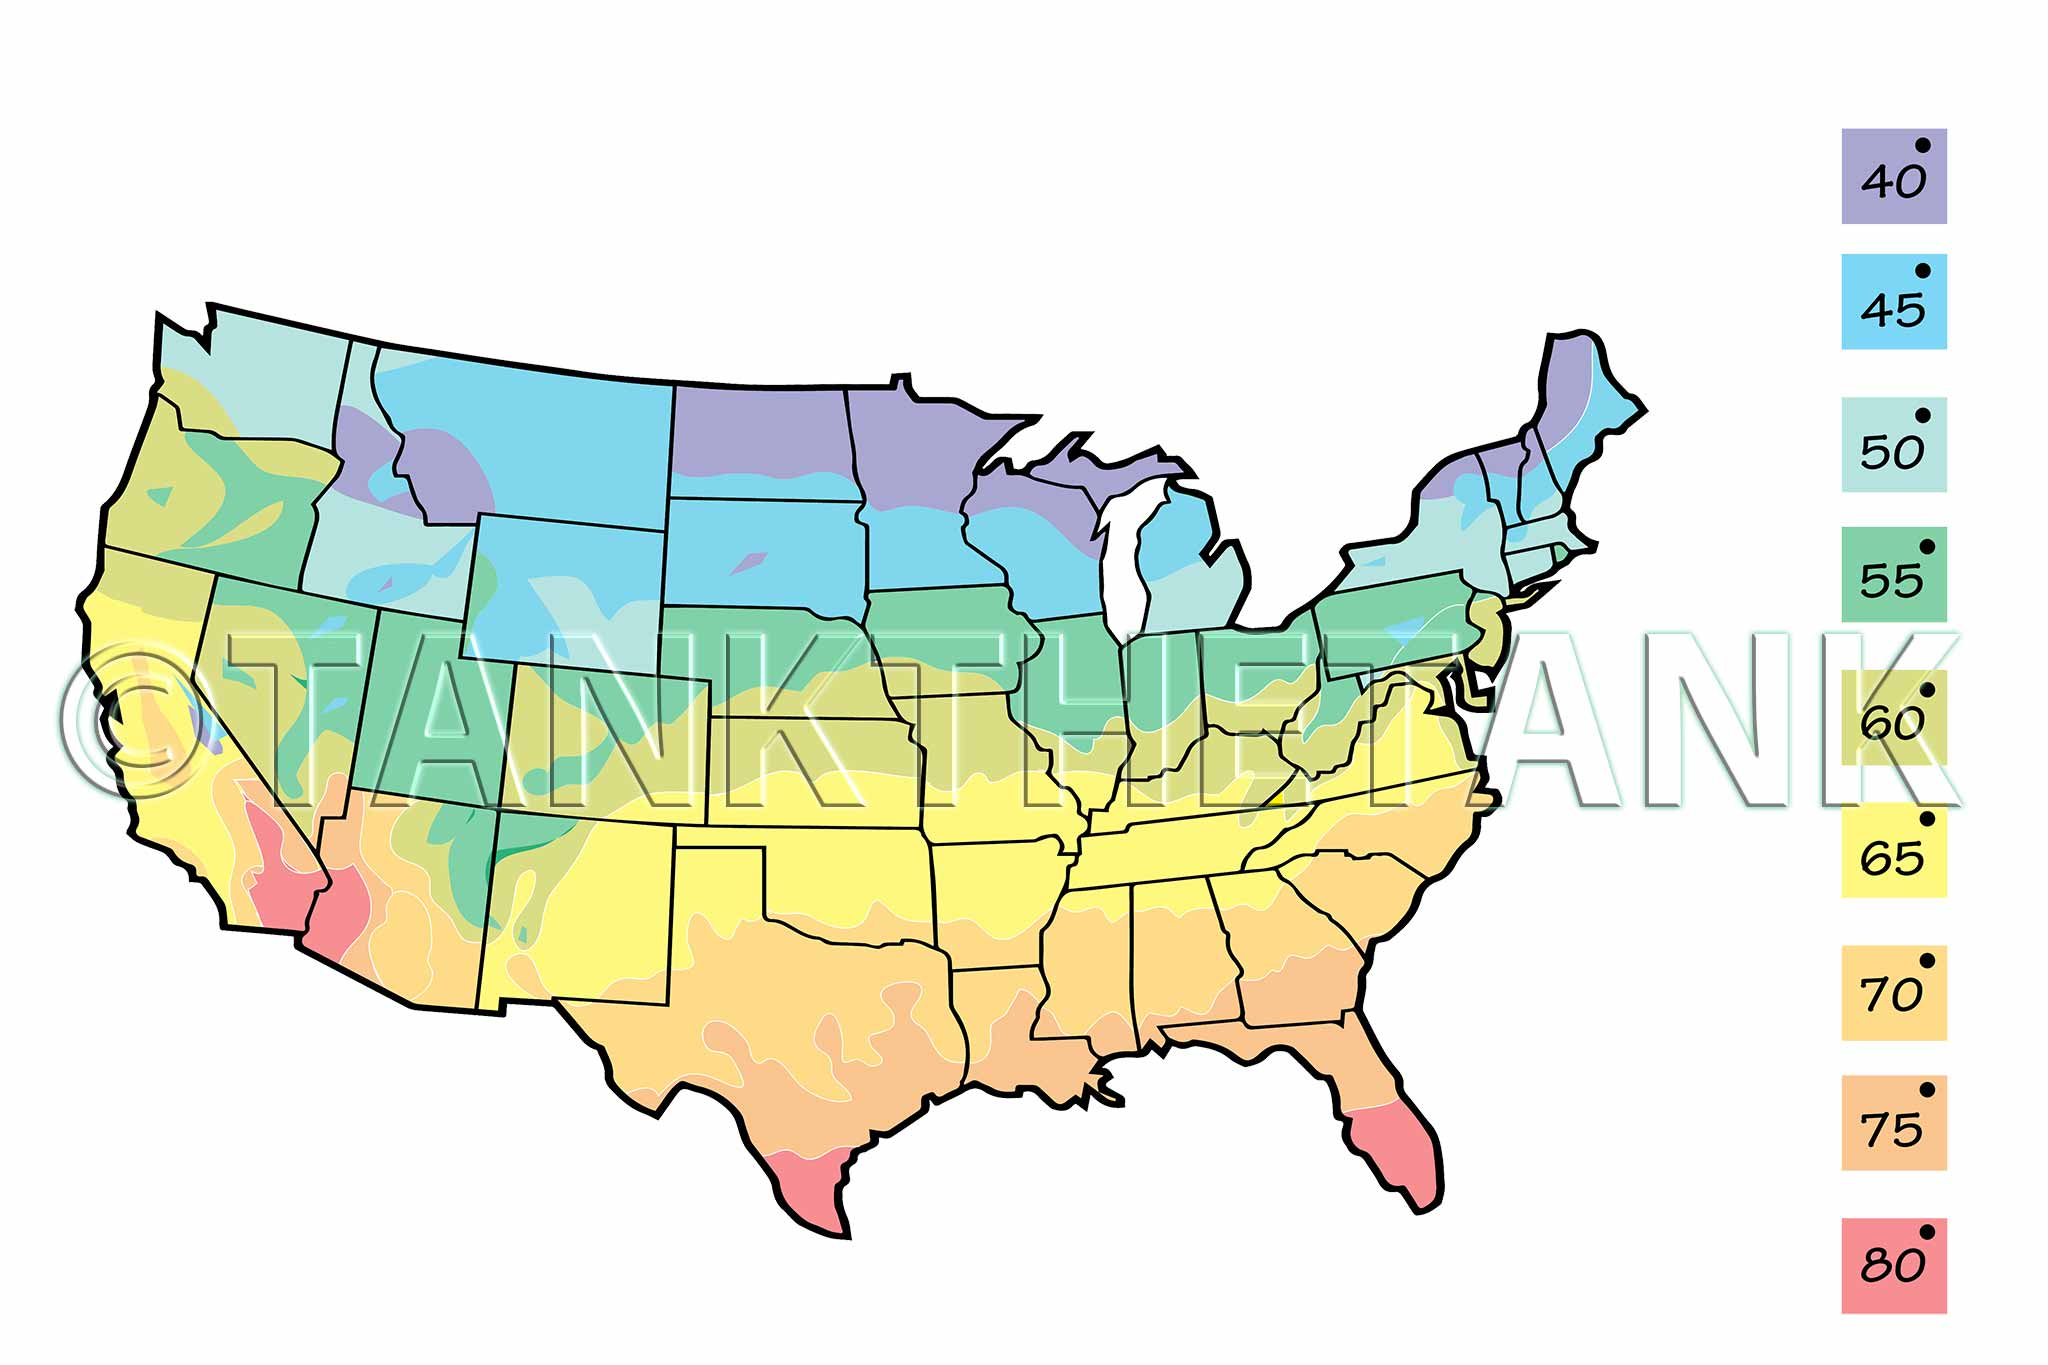 Color coded map of the United States showing average incoming water temperature.